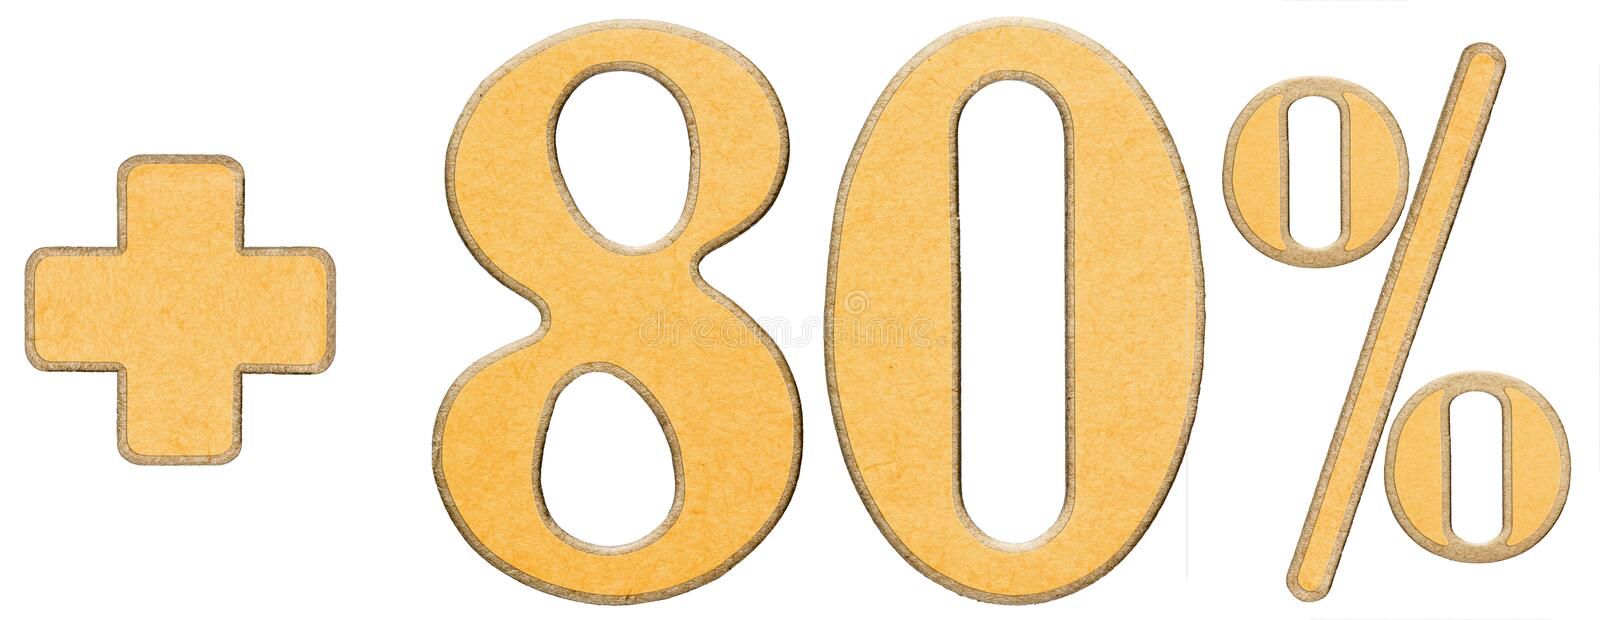 Download Percent Benefits, Plus 80 Eighty Percent, Numerals Isolated On W Stock Photo - Image: 83713504